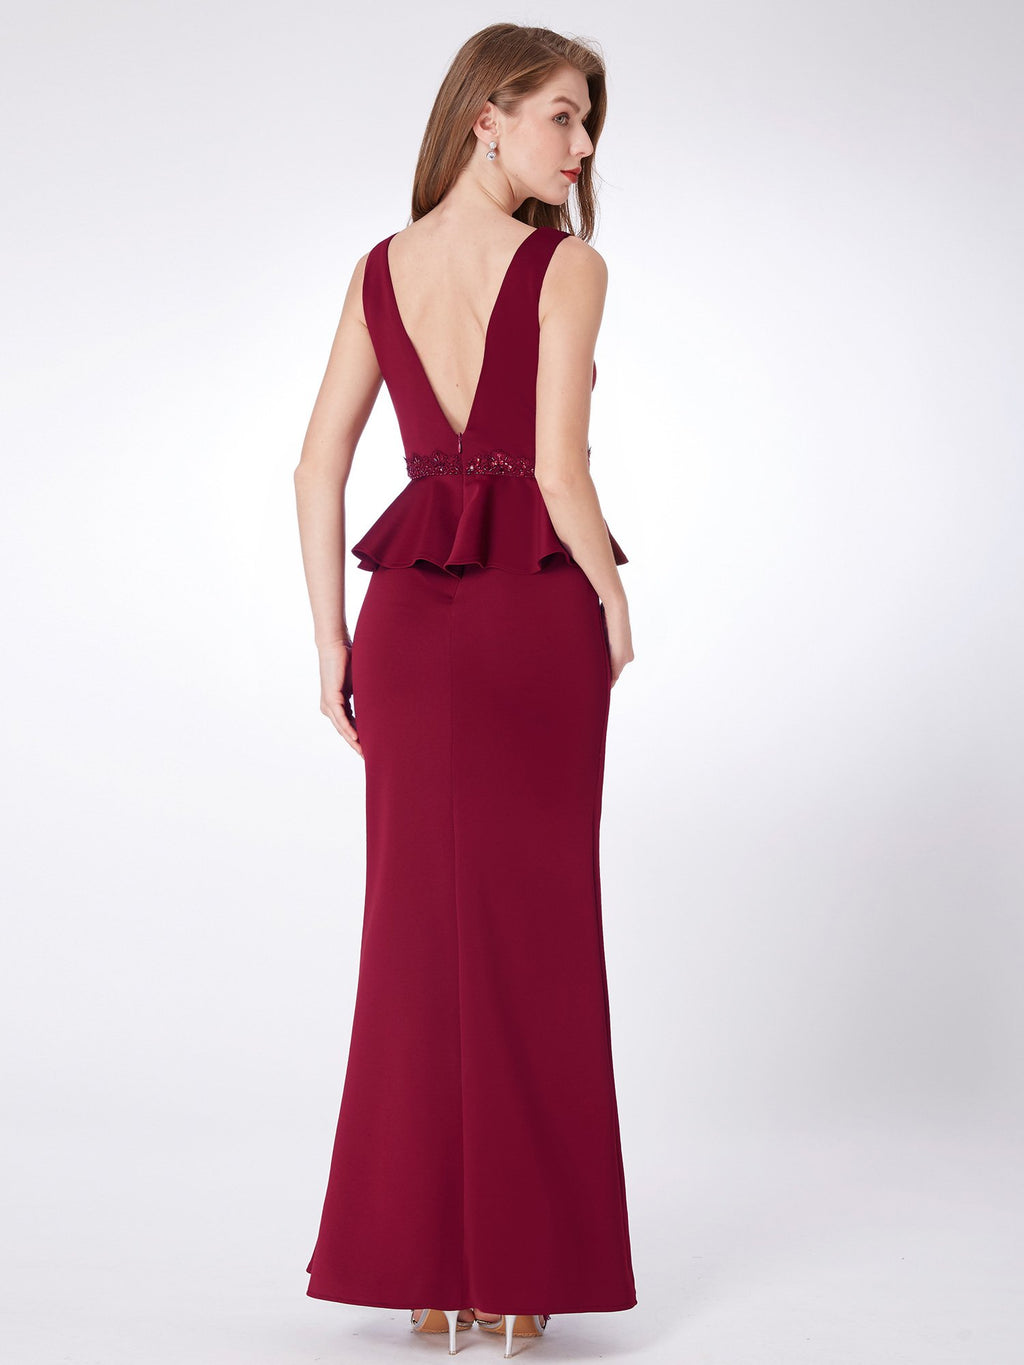 Elegant Long Evening Dress Burgundy